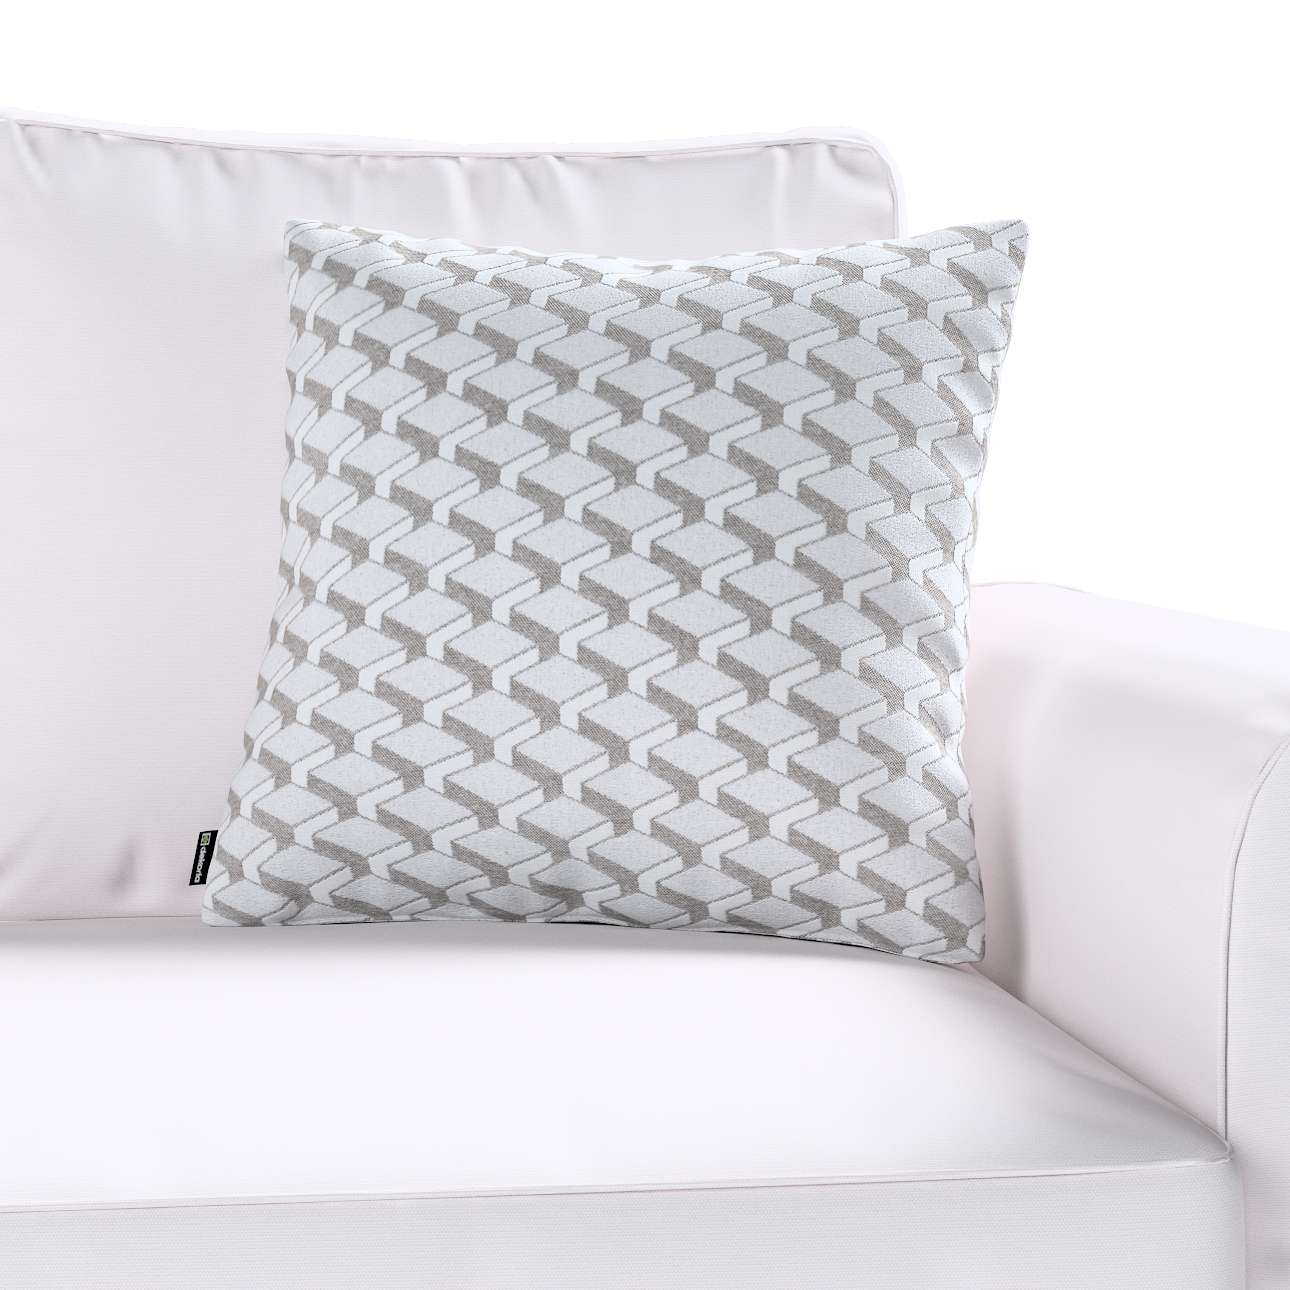 Kinga cushion cover 43 × 43 cm (17 × 17 inch) in collection Rustica, fabric: 138-18